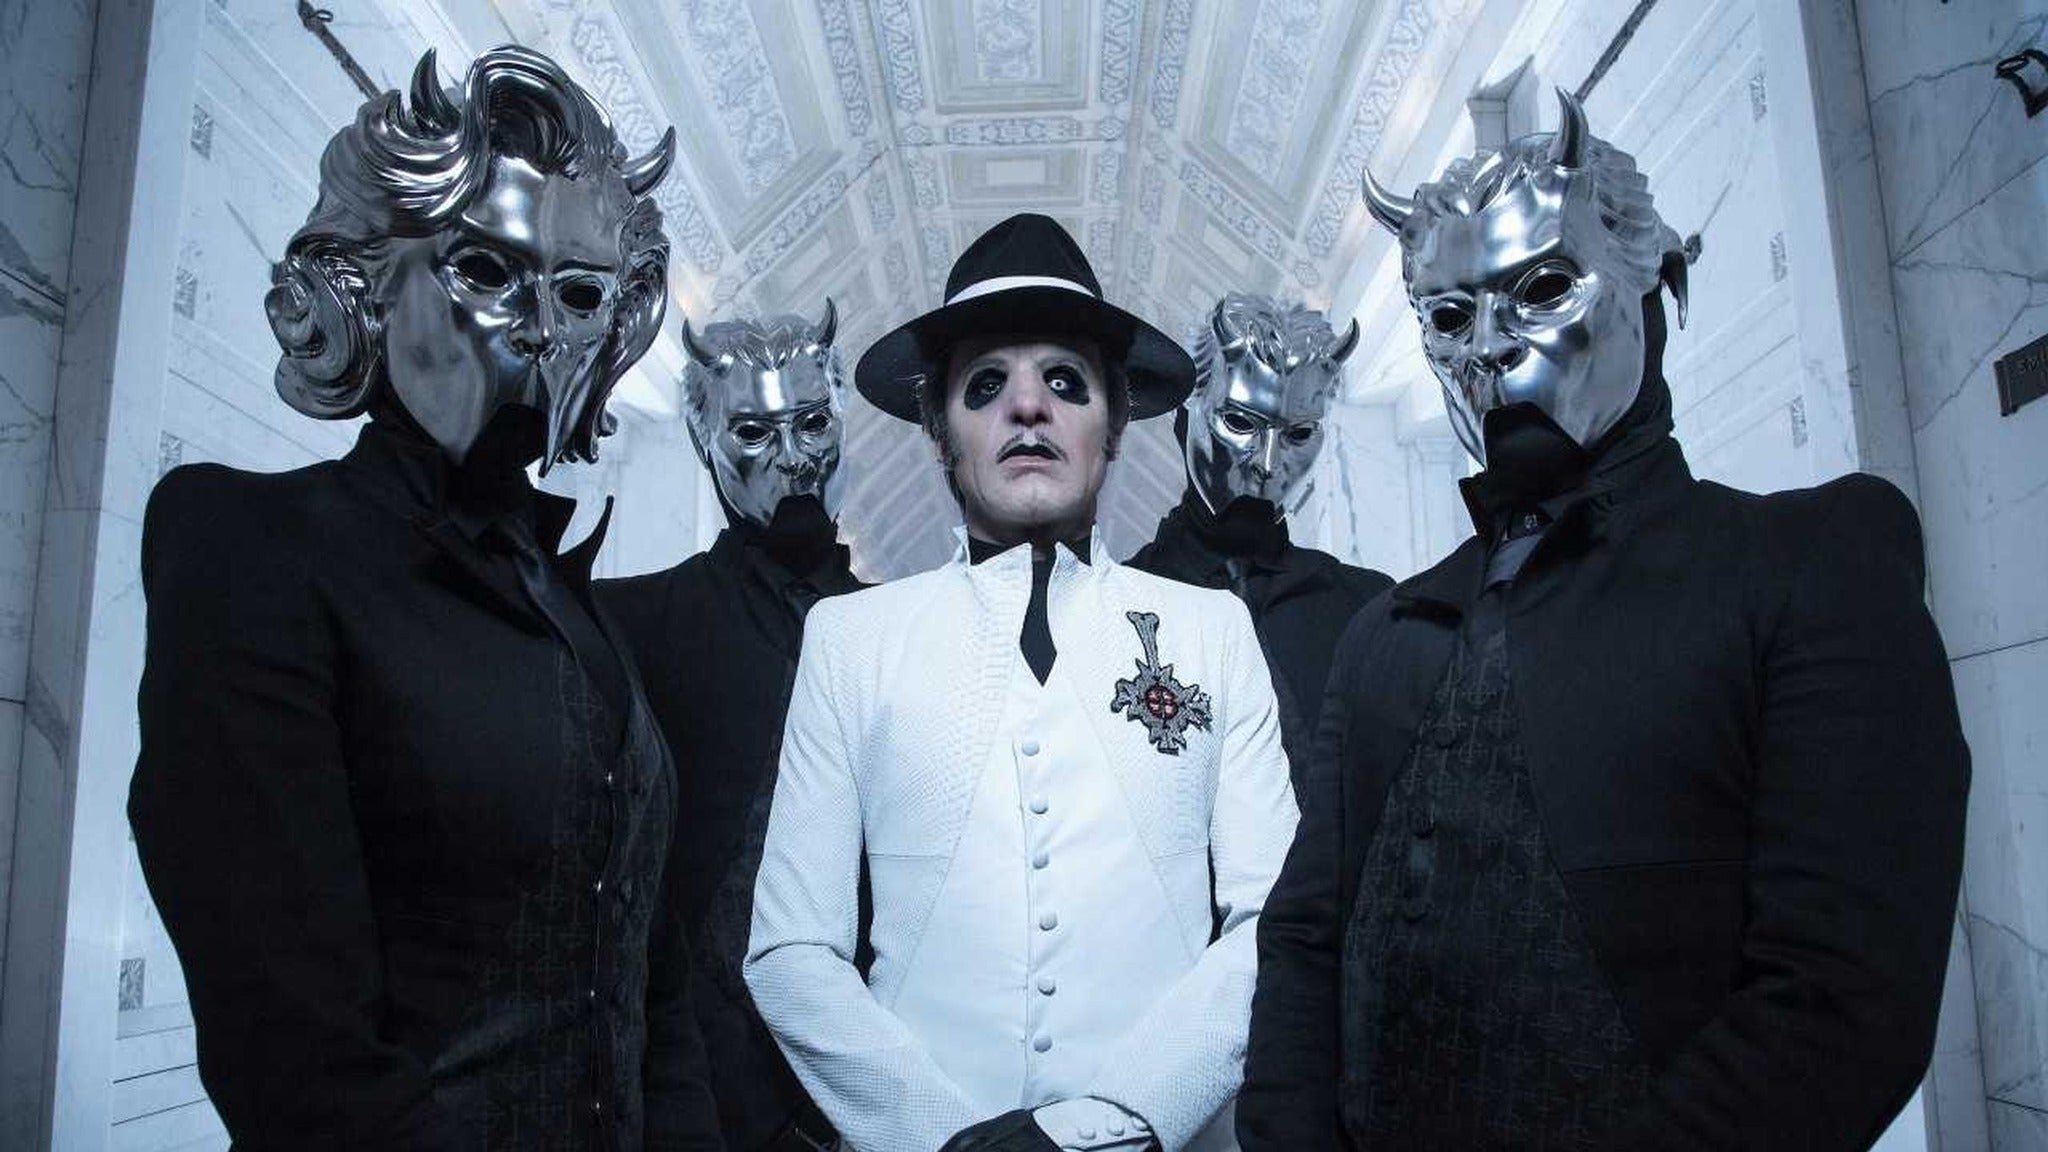 GHOST - The Ultimate Tour Named Death at Scheels Arena